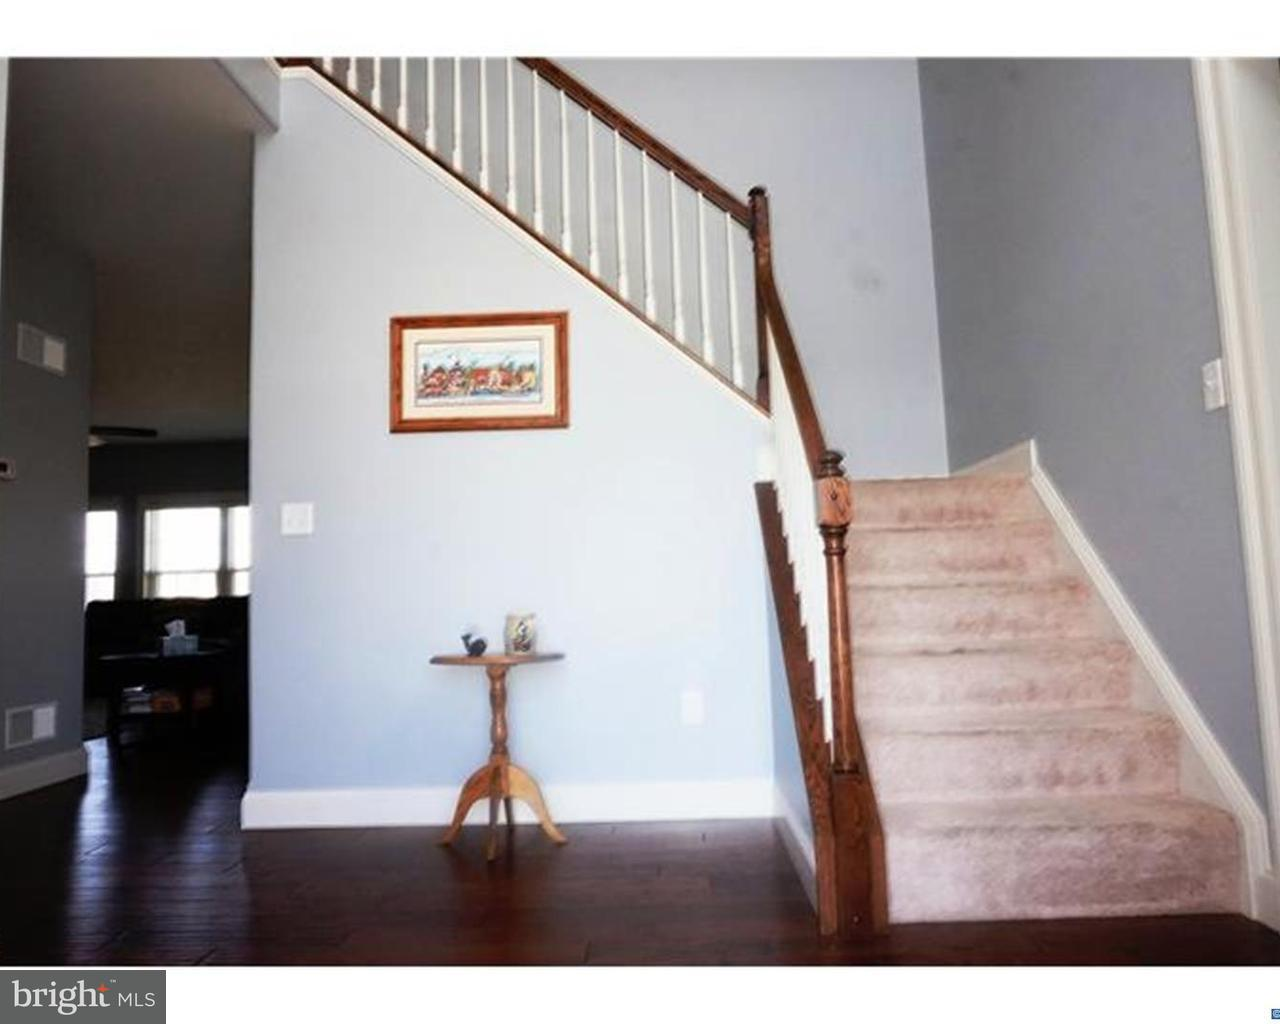 132 MILLHOUSE DR, LINCOLN UNIVERSITY - Listed at $449,900, LINCOLN UNIVERSITY